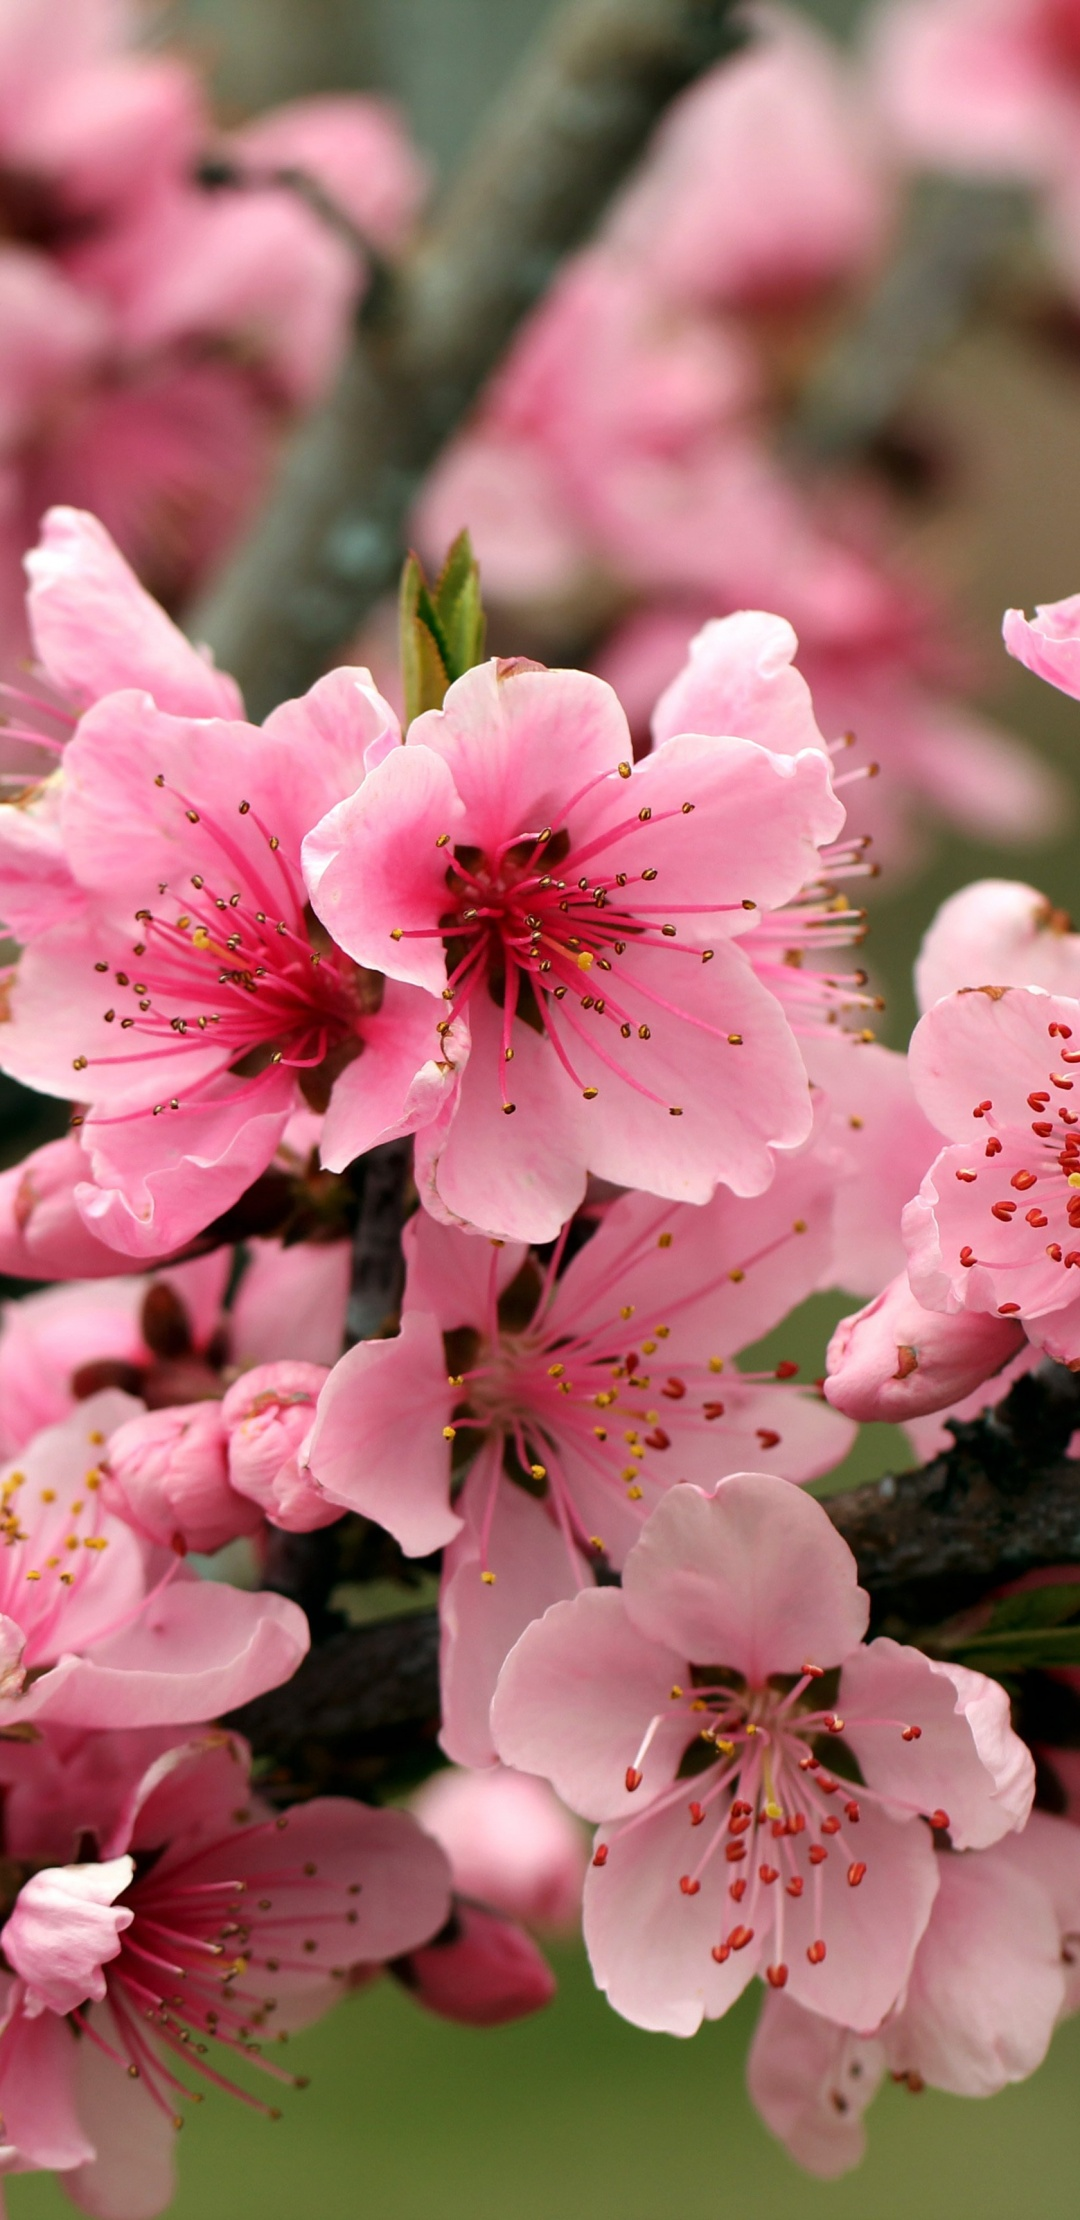 Apple tree bright spring pink flowers 1080x2220 mightylinksfo